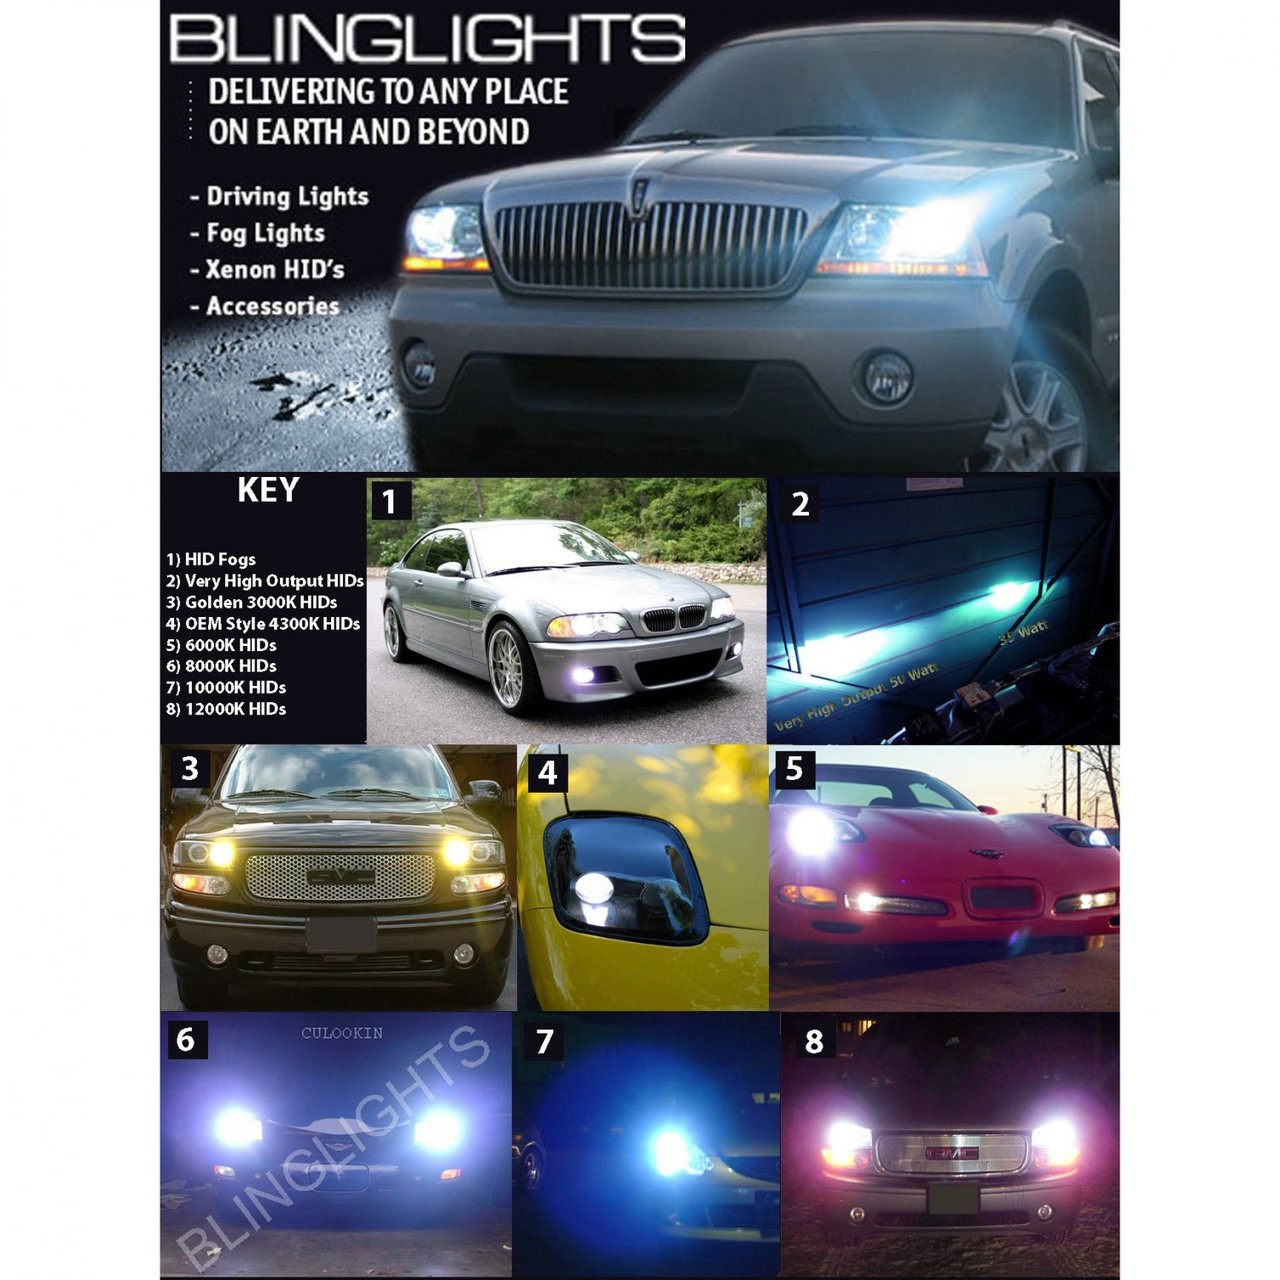 hight resolution of 1994 1995 1996 1997 1998 1999 cadillac deville xenon hid conversion kit for headlamps headlights